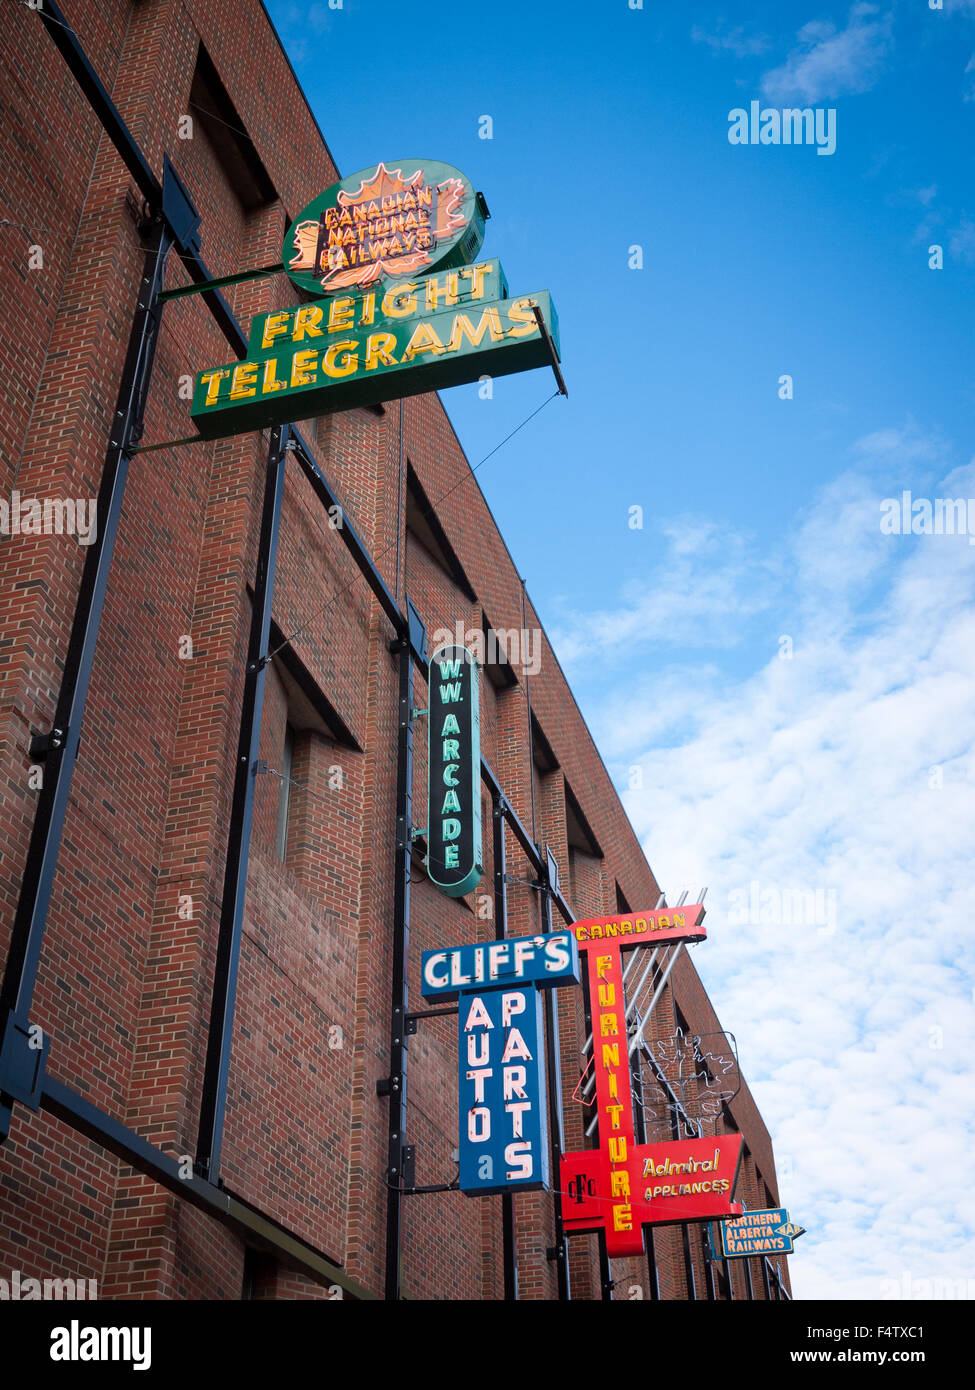 The outdoor Neon Sign Museum in Edmonton, Alberta, Canada. - Stock Image